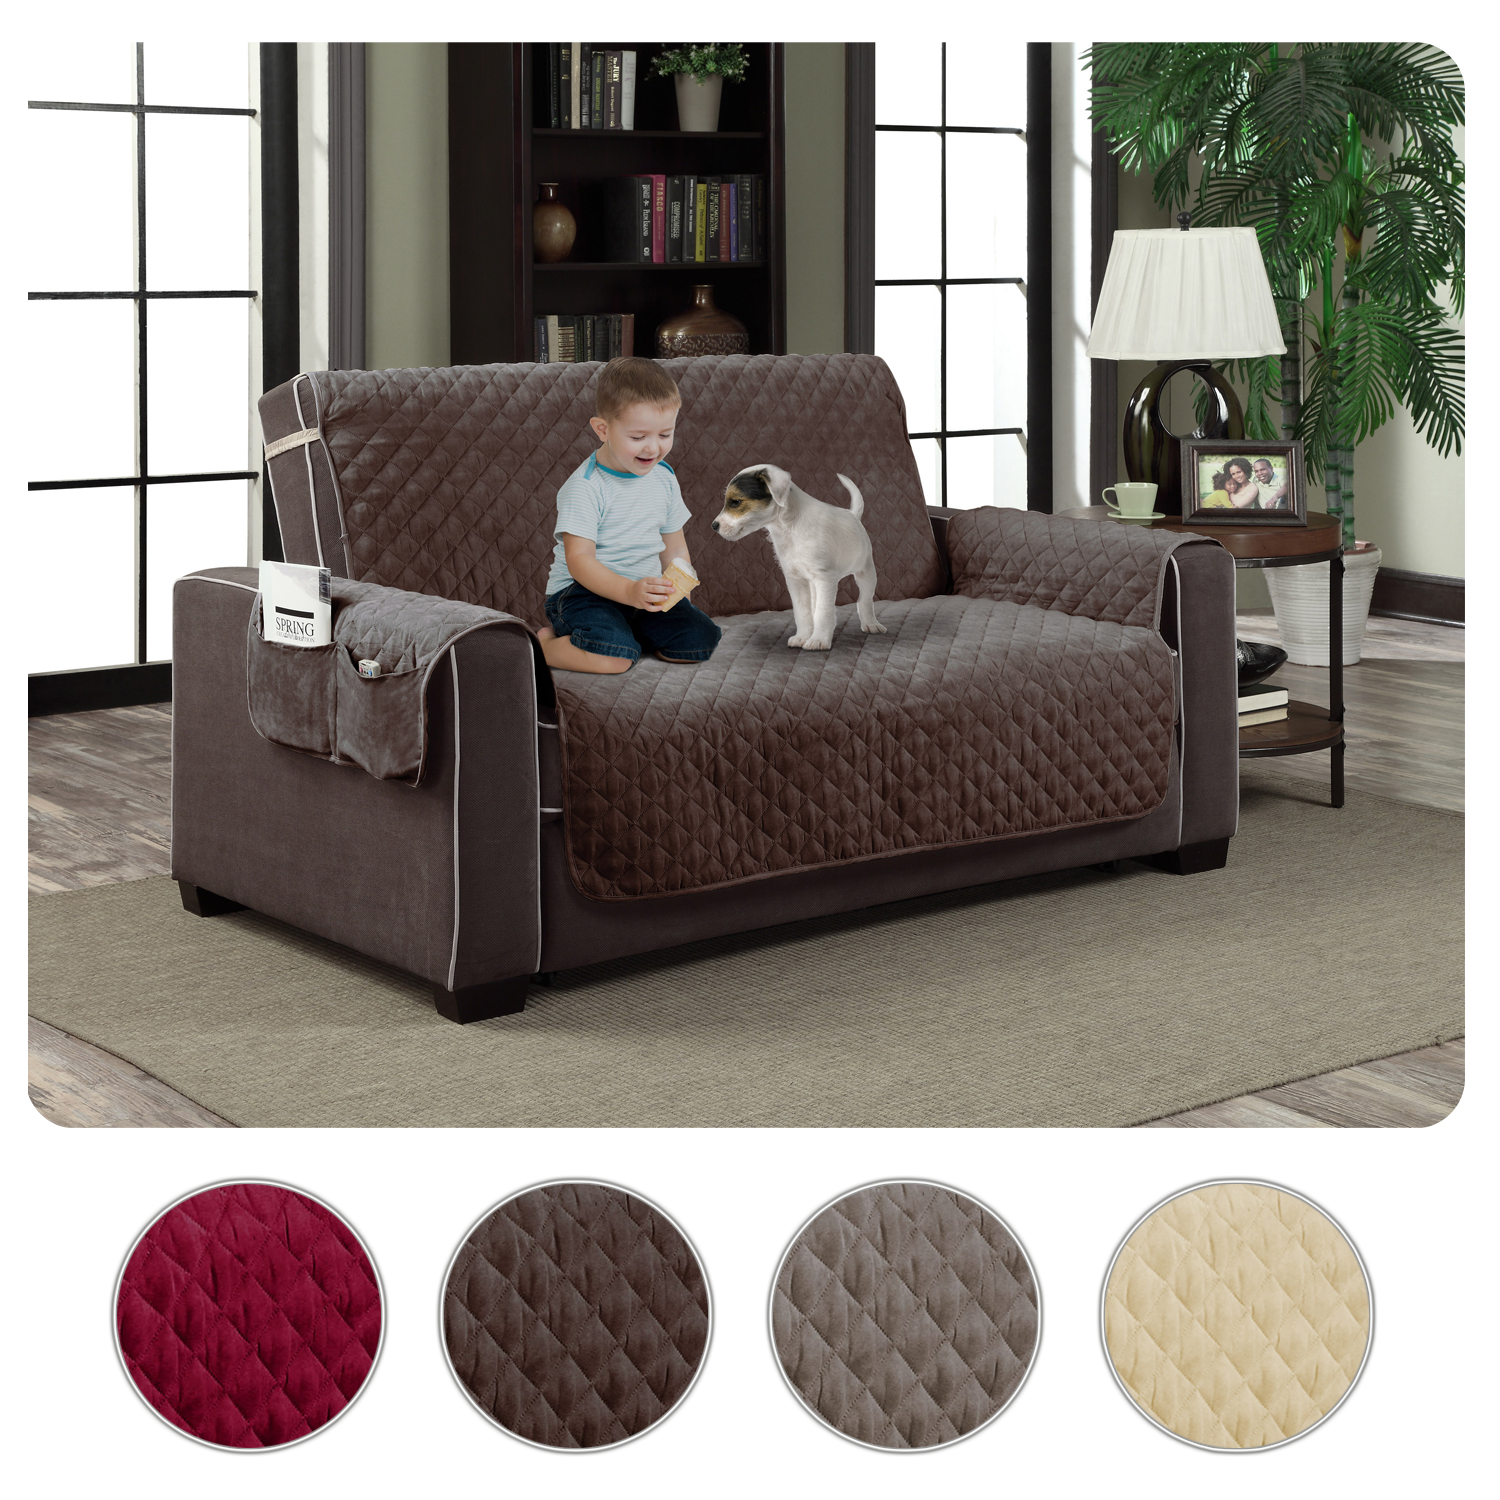 Micro Suede Slipcover Pockets Pet Dog Couch Furniture Protector Cover Love Seat Ebay